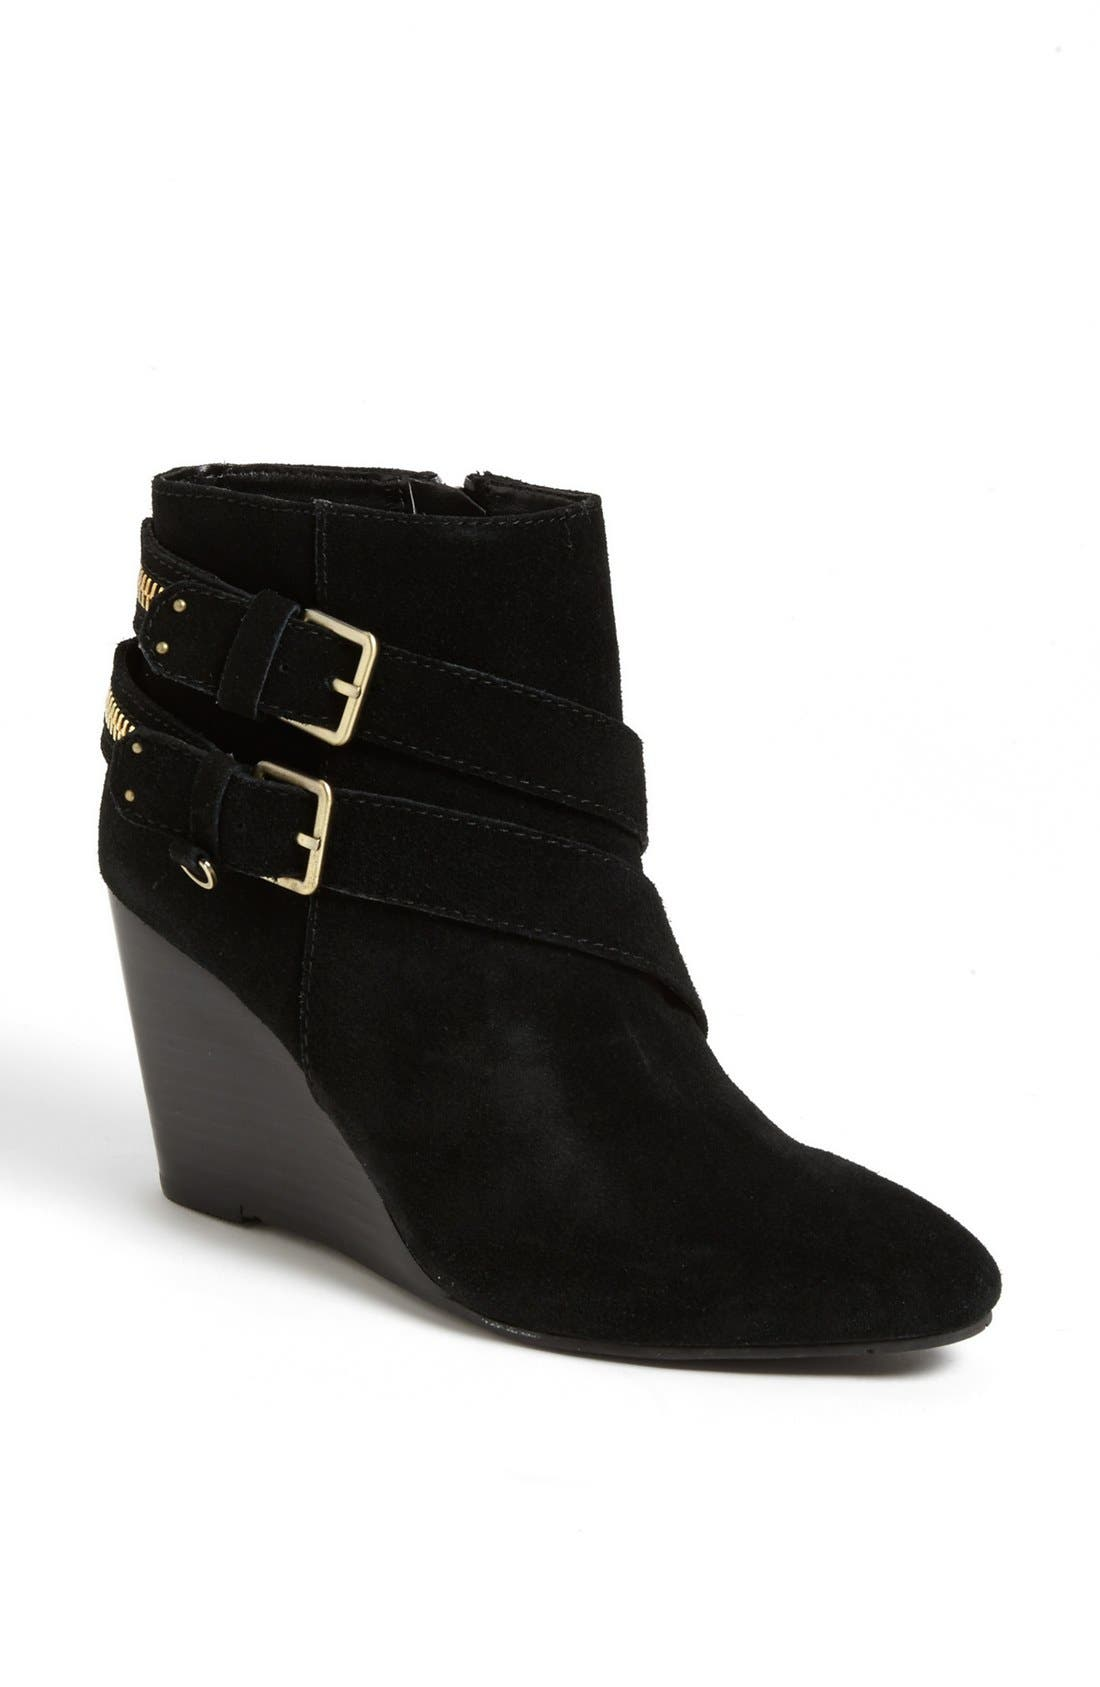 Main Image - DV by Dolce Vita 'Paden' Wedge Bootie